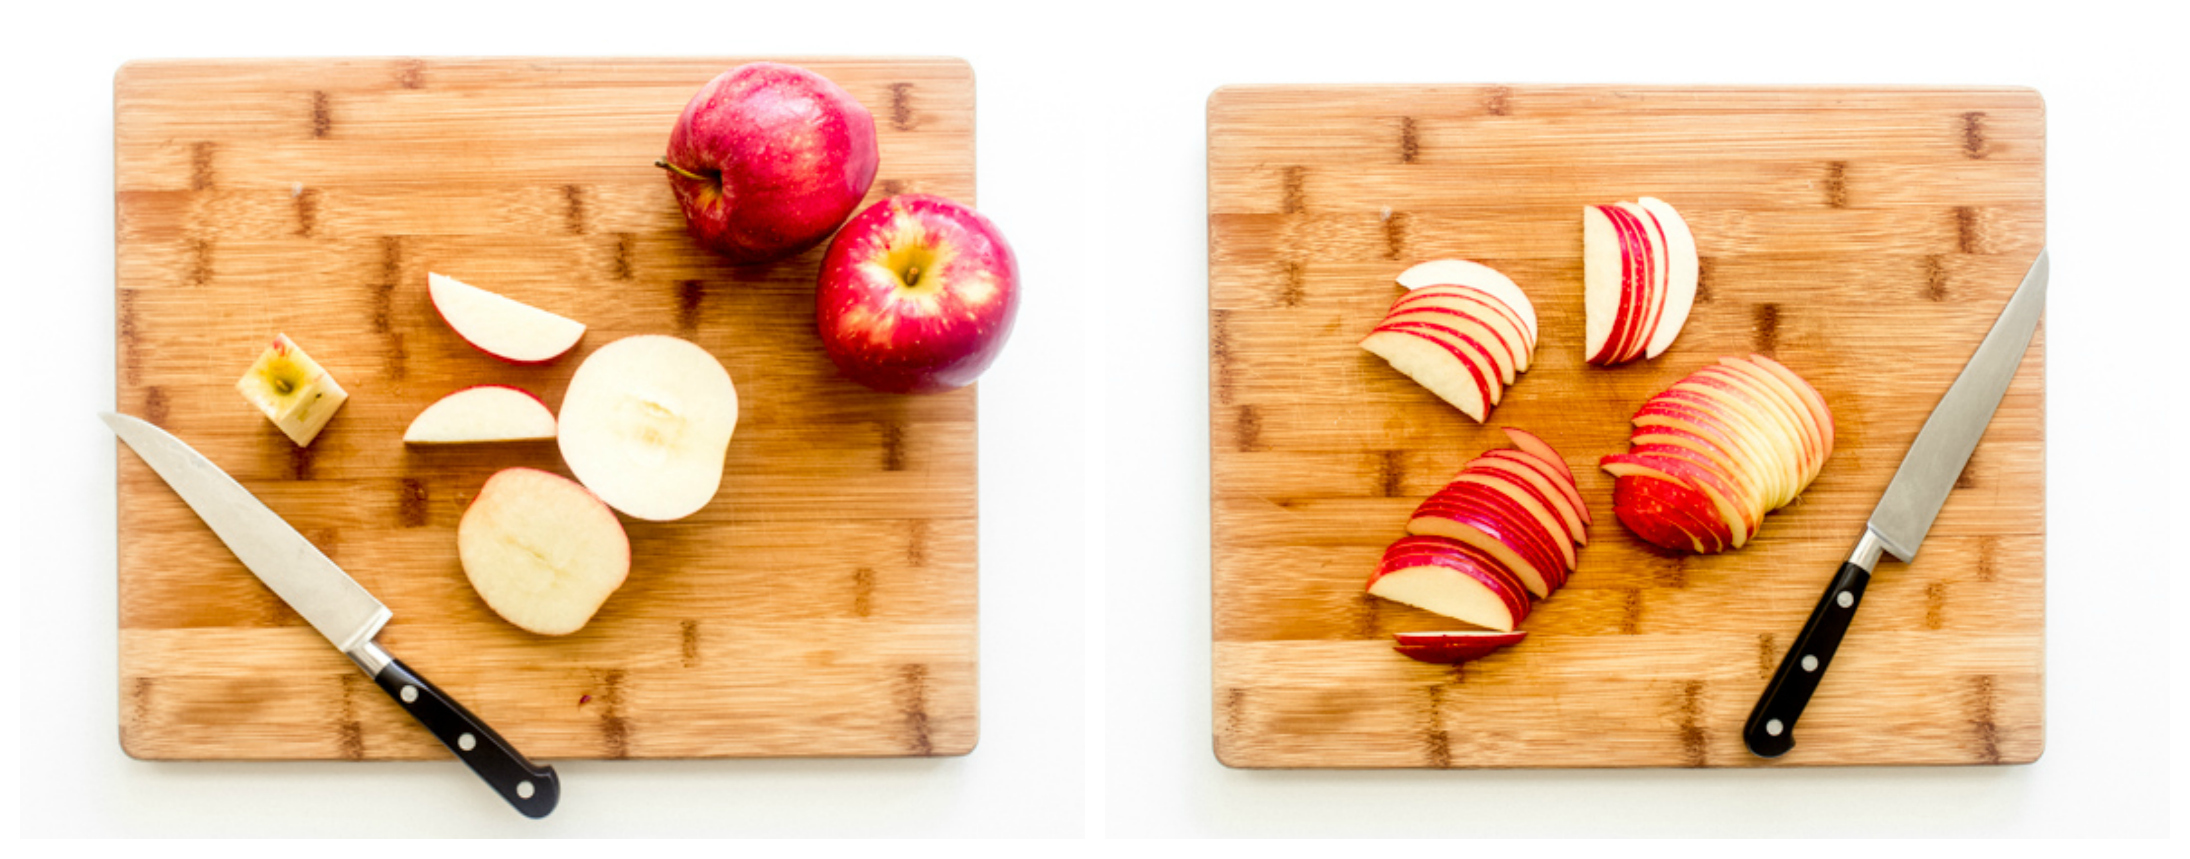 sliced apples on brown board